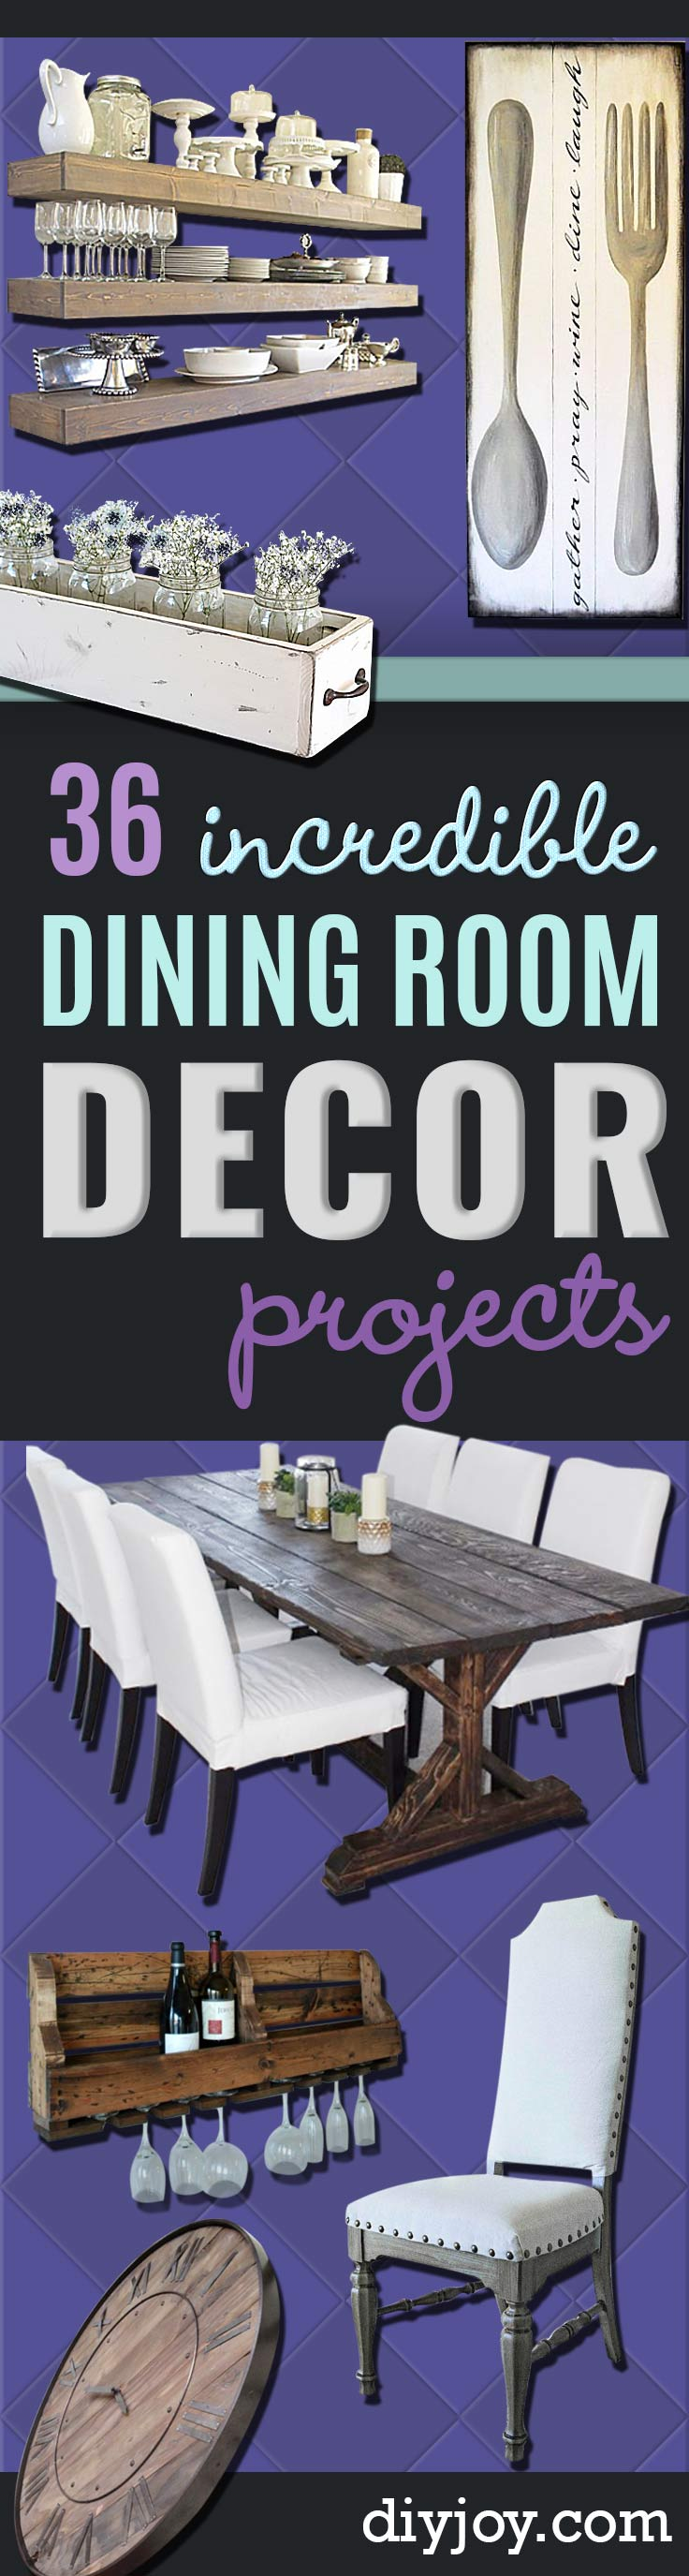 36 DIY Dining Room Decor Ideas DIY Joy